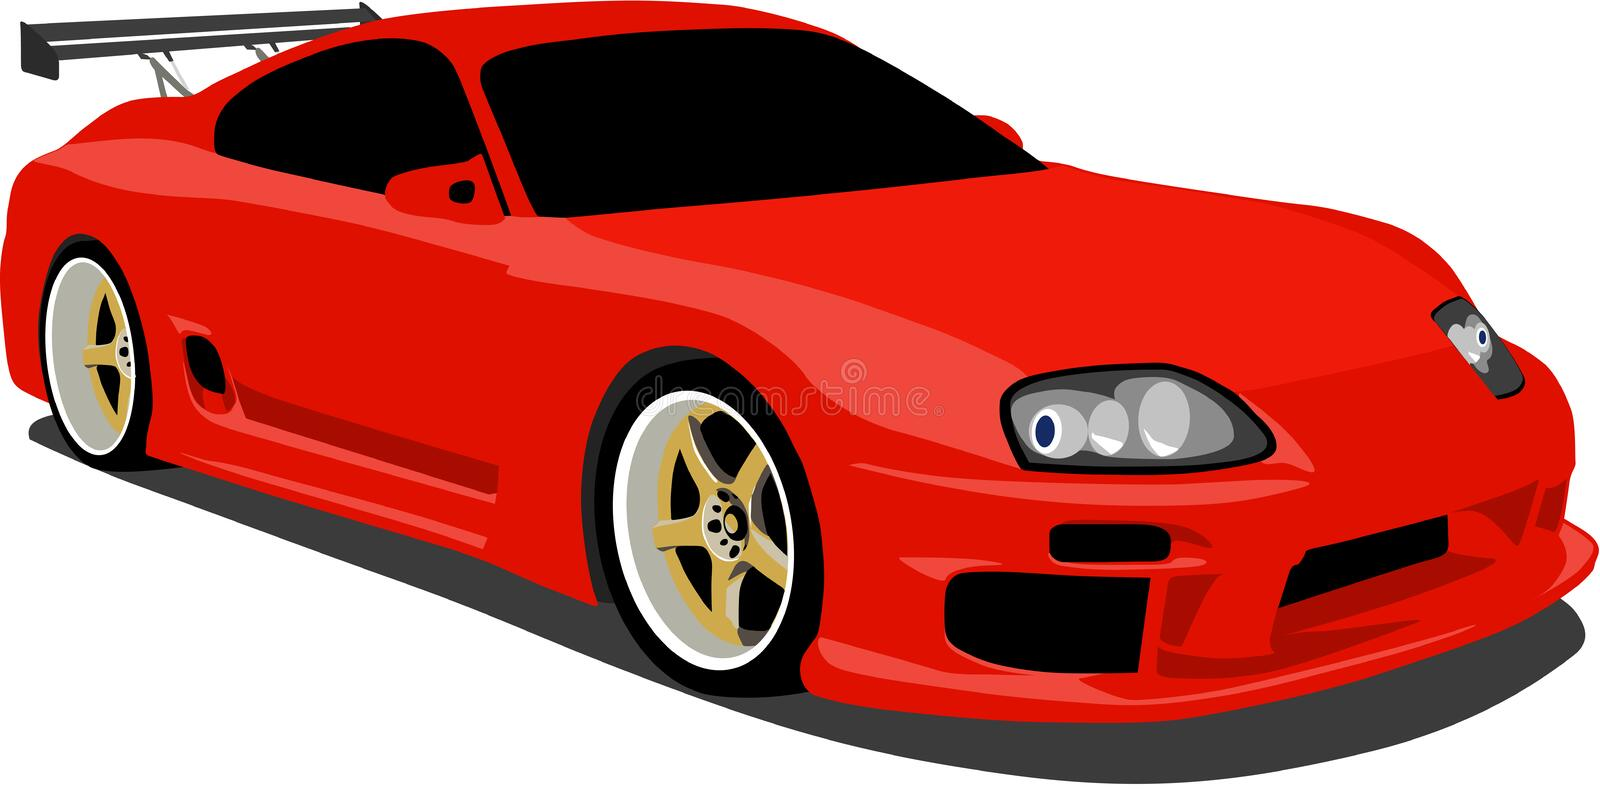 Red Sports Car Illustration